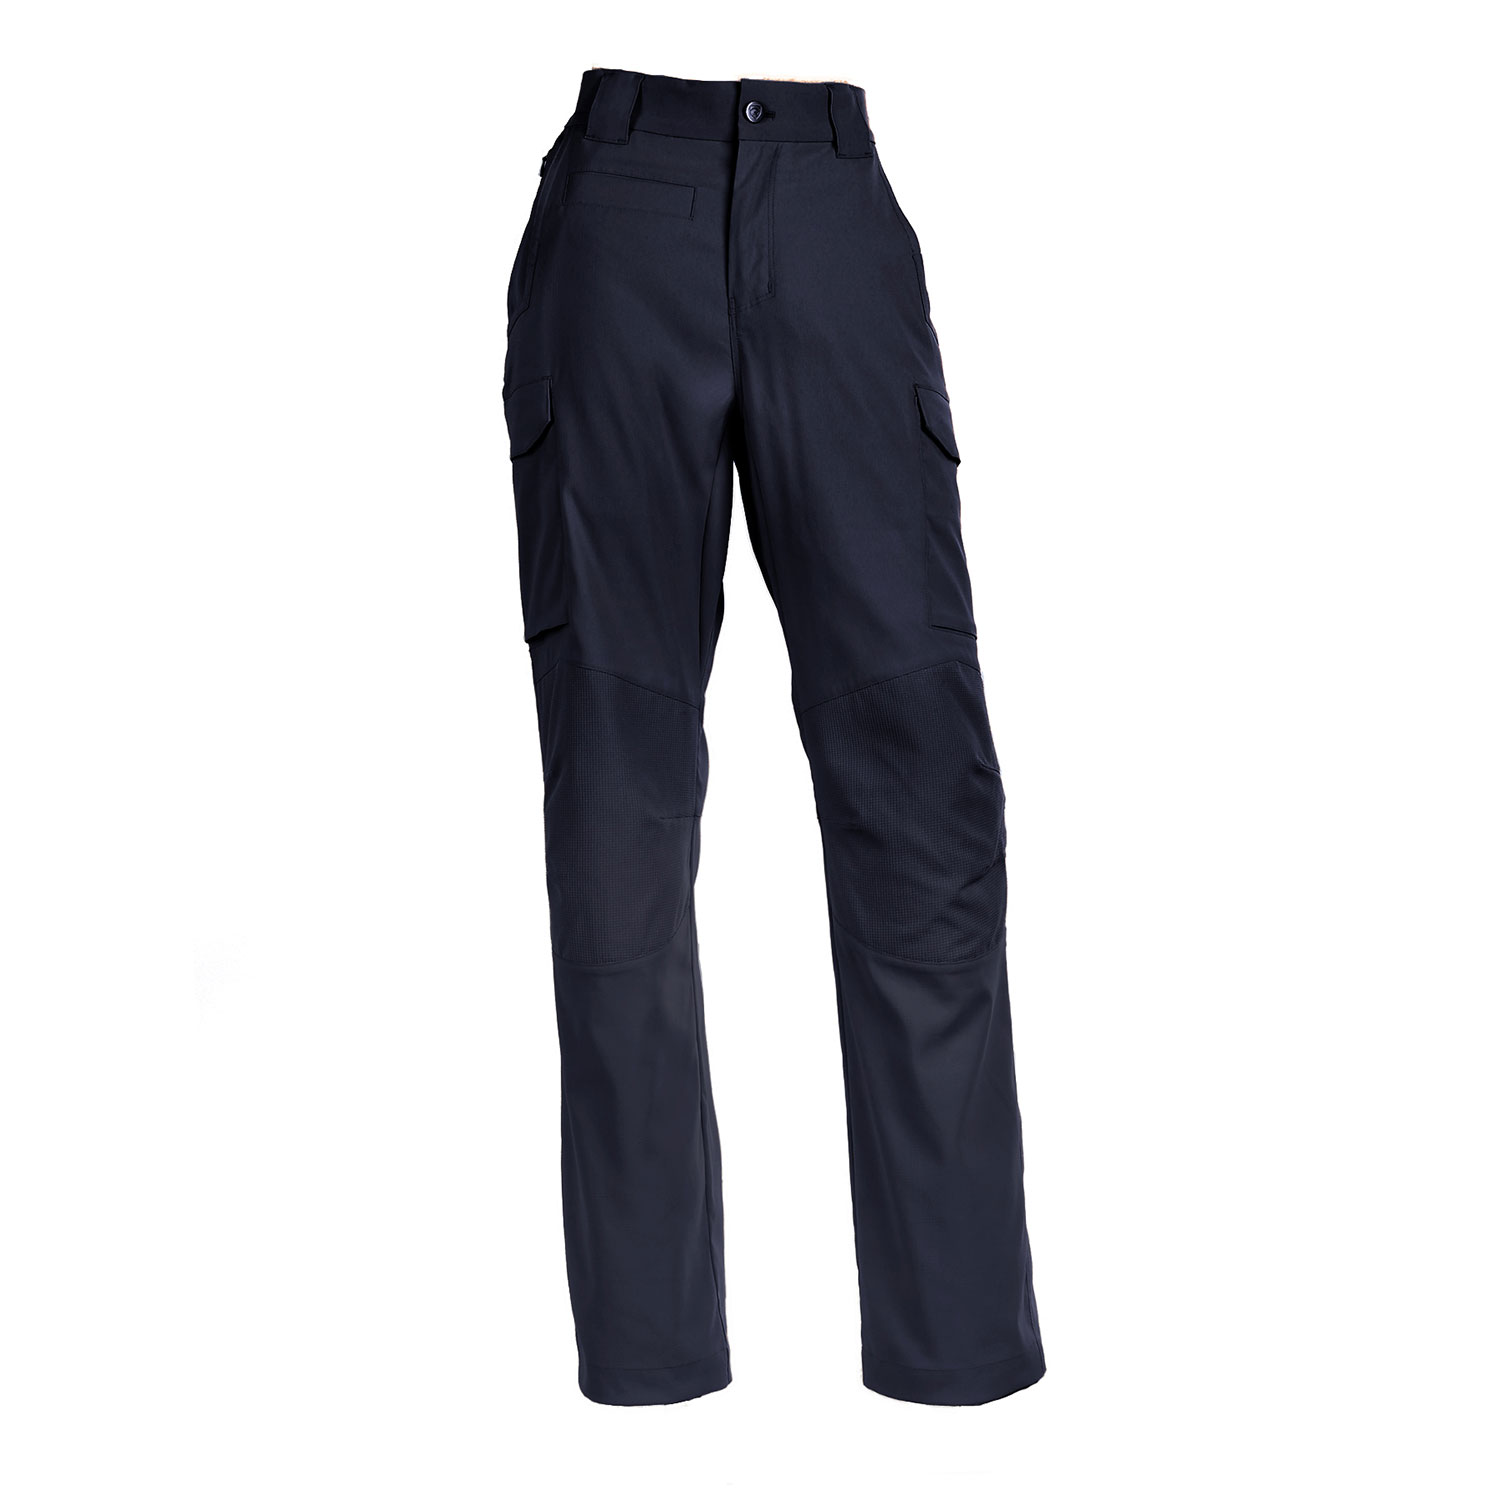 Galls Women's Elite Ops Tactical Pants